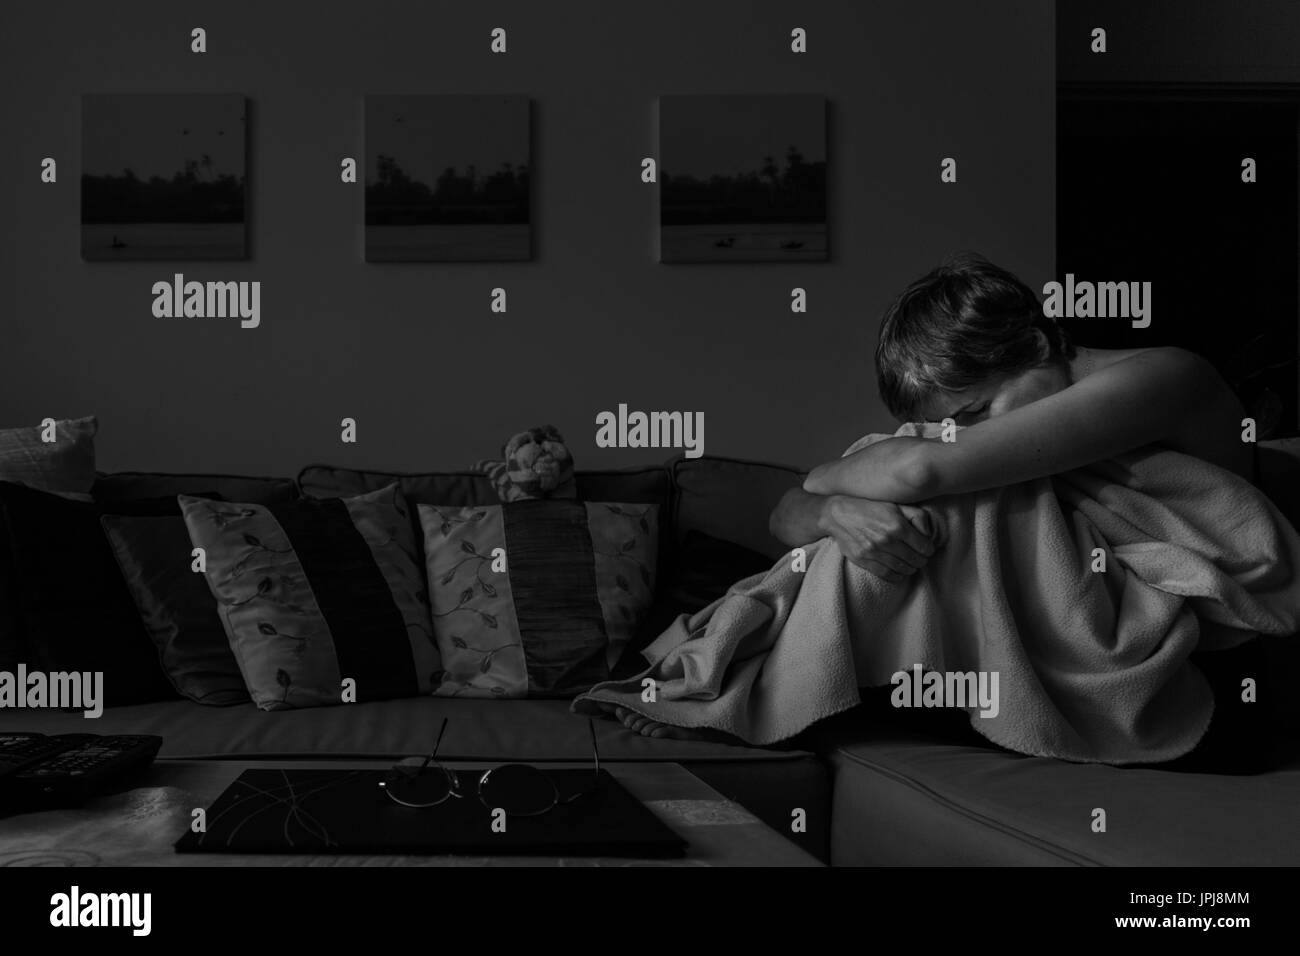 Depressed woman, curled up on sofa, clutching legs, showing what it feels like living with Depression and Anxiety. - Stock Image